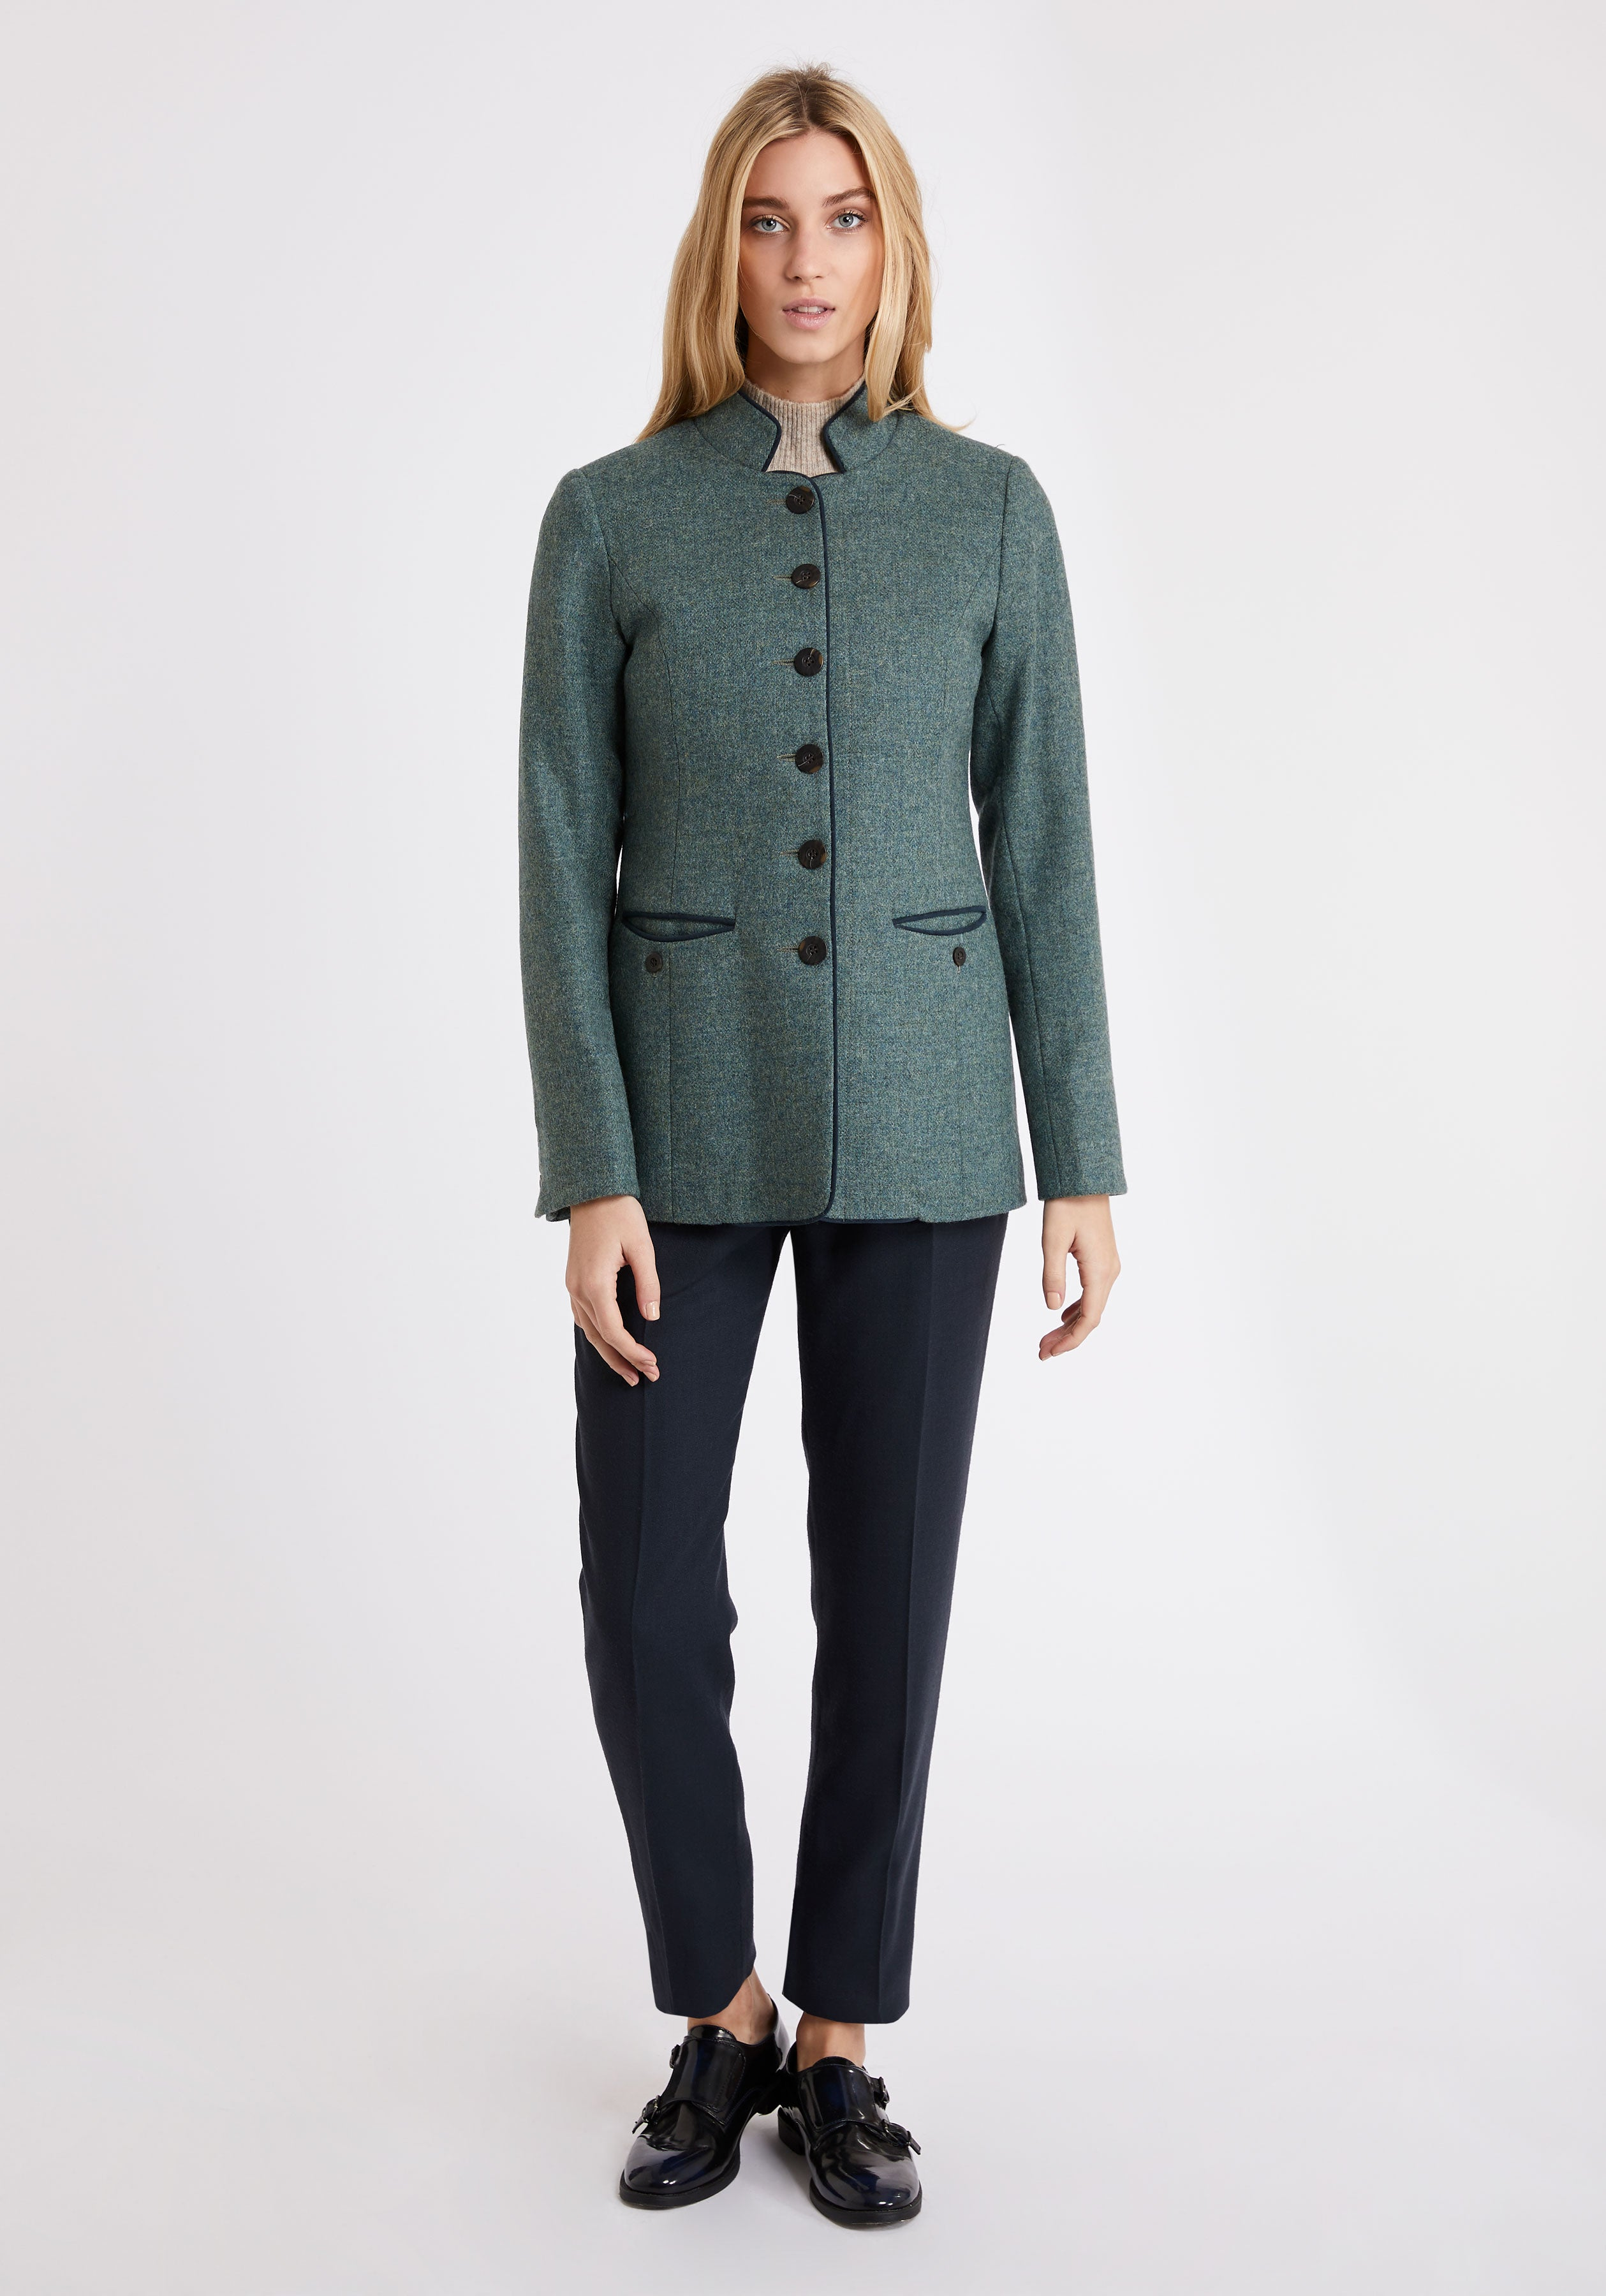 Patmos Jacket in Teal Herringbone